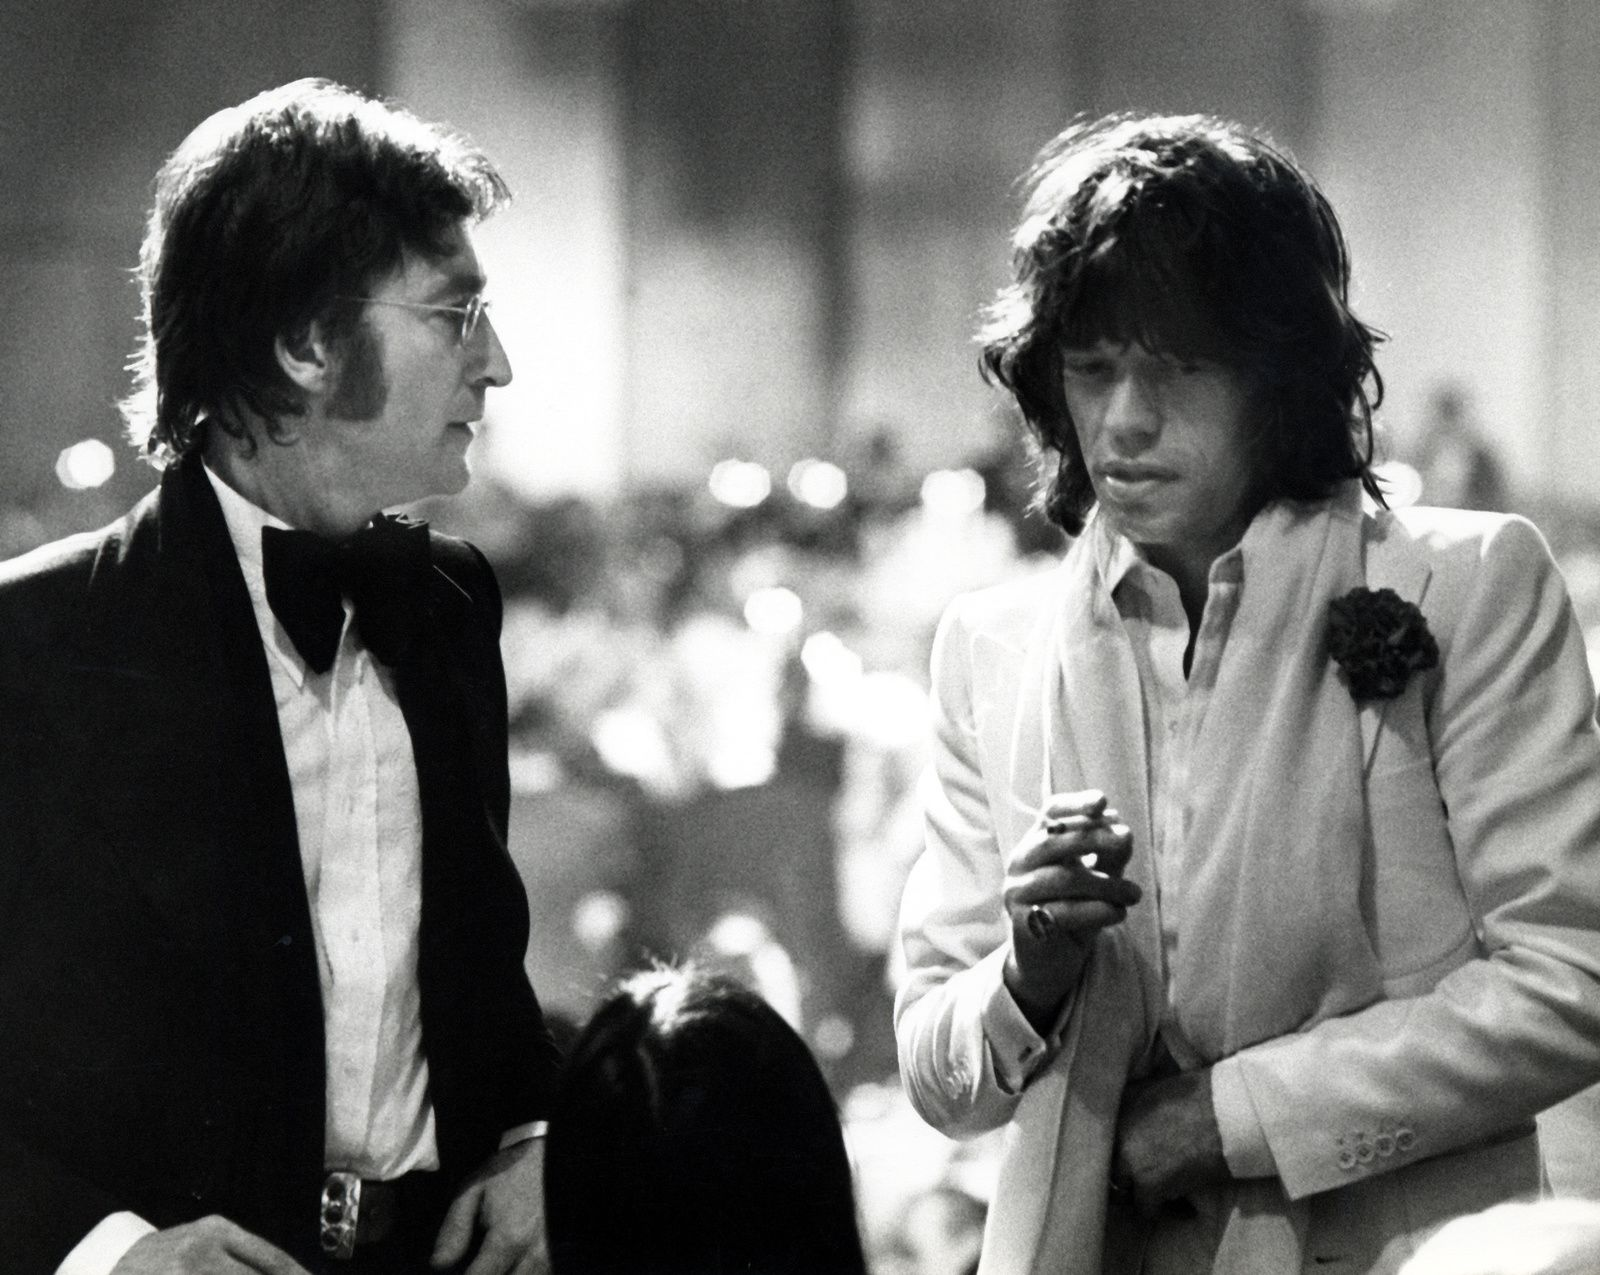 John Lennon and Mick Jagger (Los Angeles, 1974)